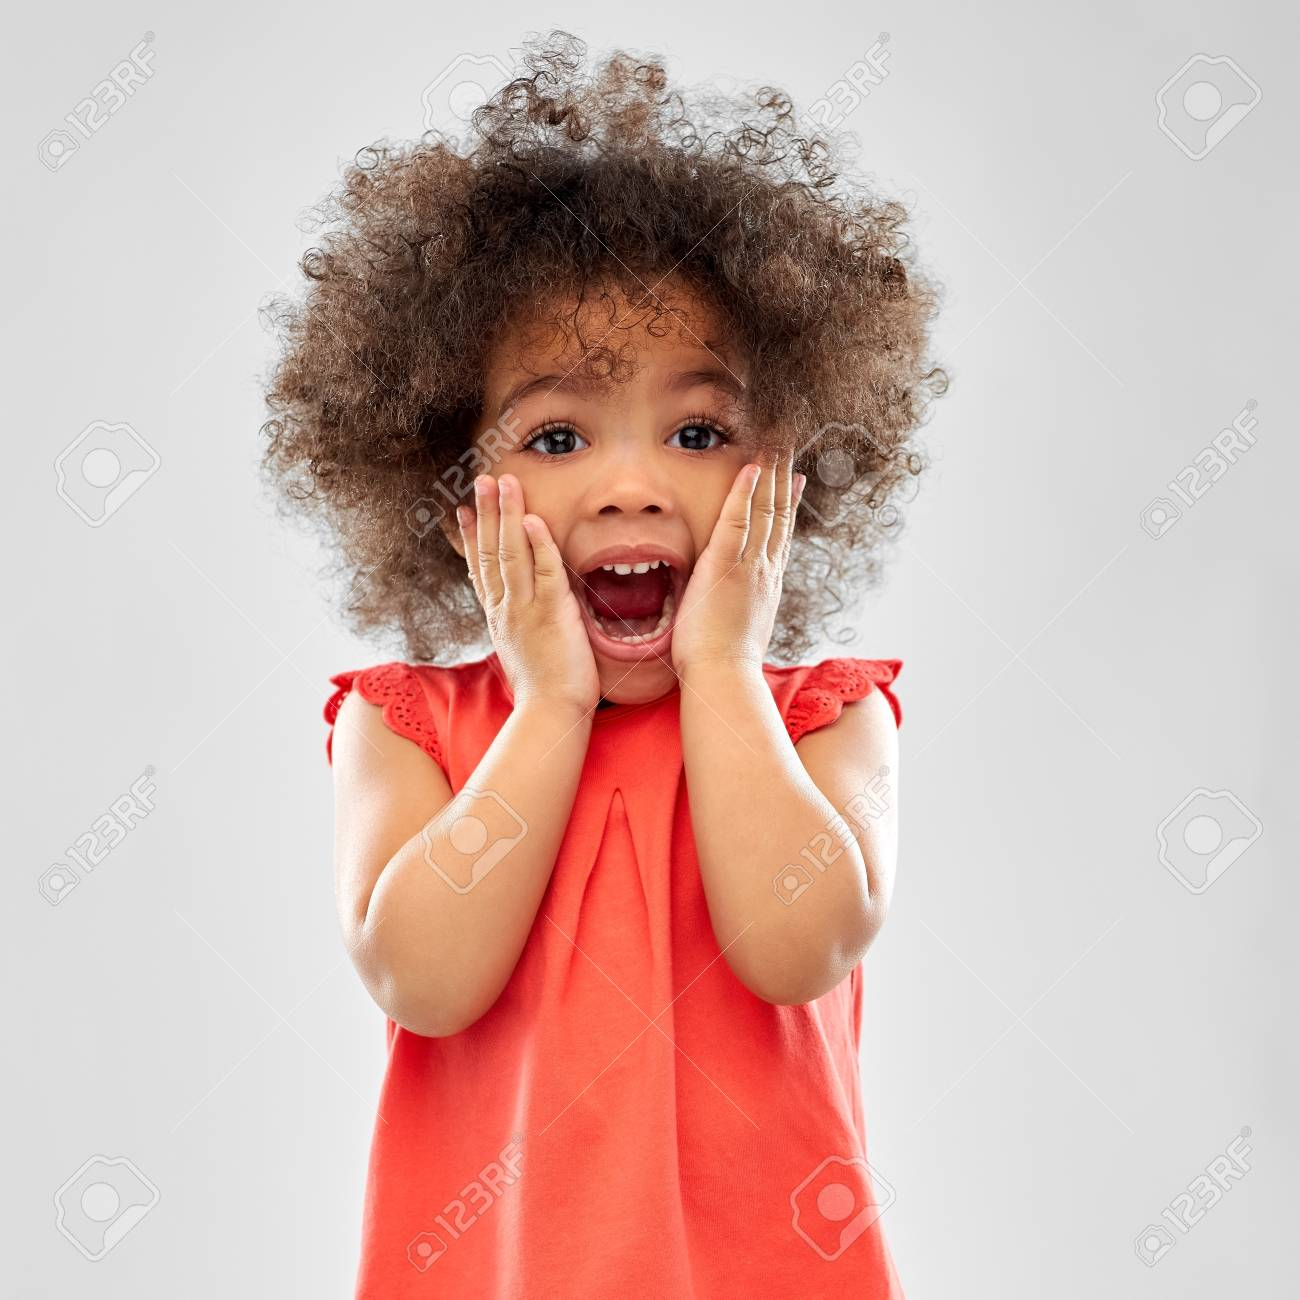 Surprised or scared little African American girl - 120571412